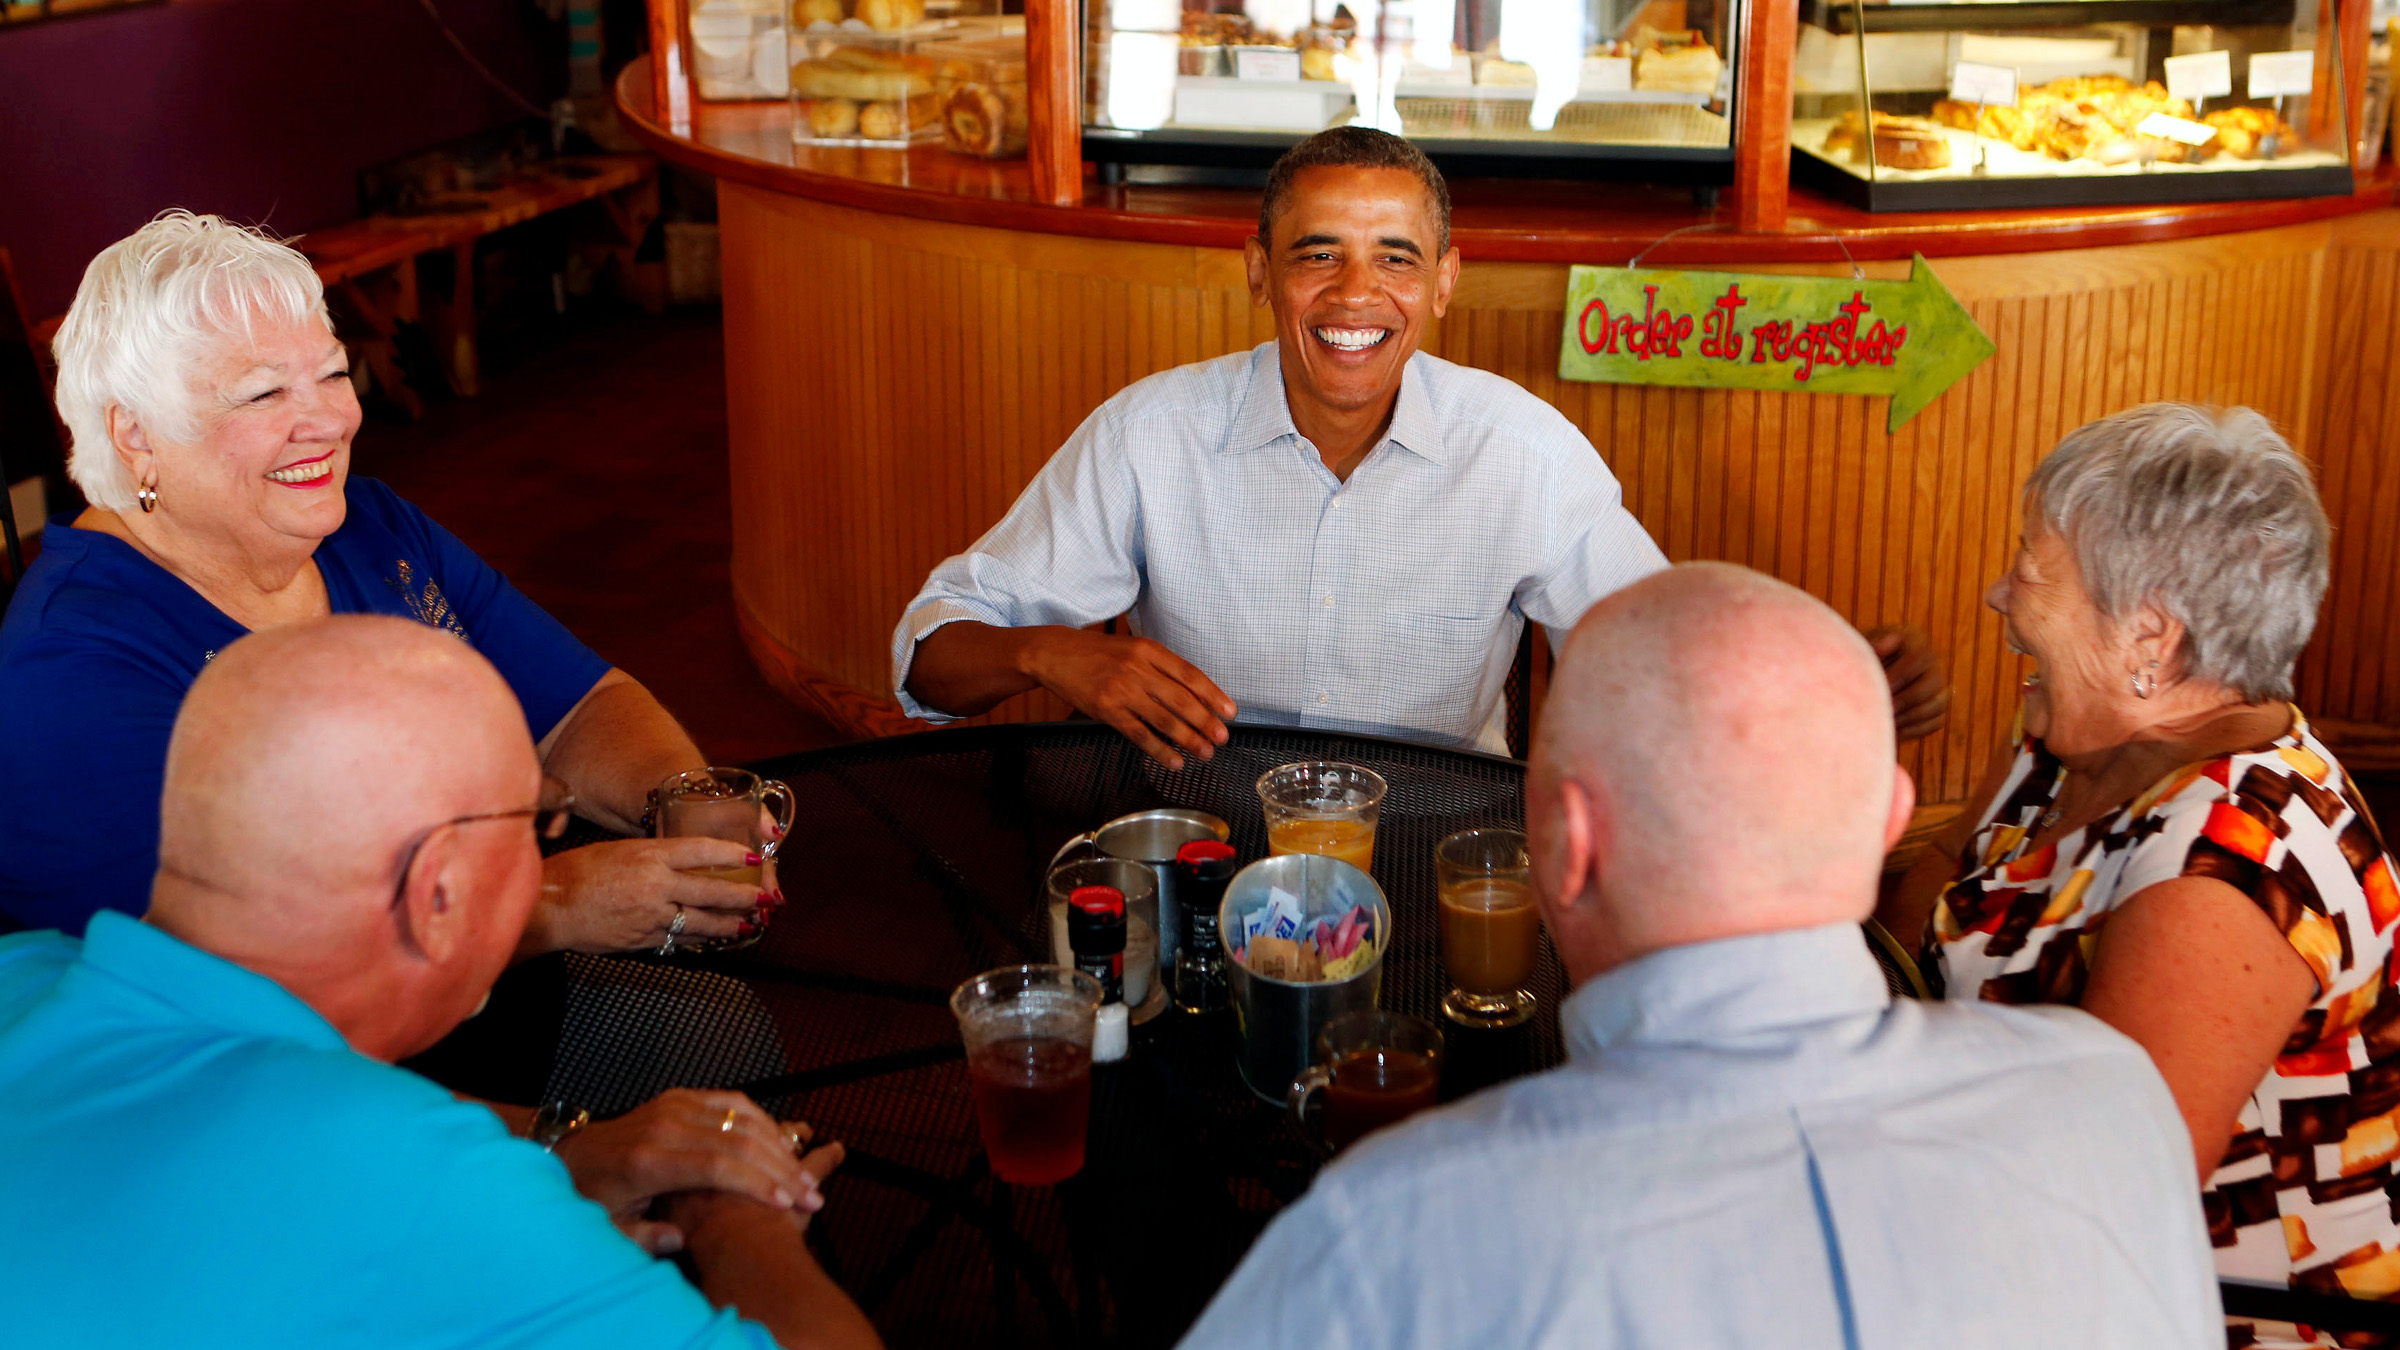 U.S. President Barack Obama eats with senior citizens inside the Ossorio Bakery and Cafe while campaigning in Cocoa, Florida, September 9, 2012. From L-R are: Jan Clark, Jerry Clark, Obama, John Hill, and Shirley Hill.